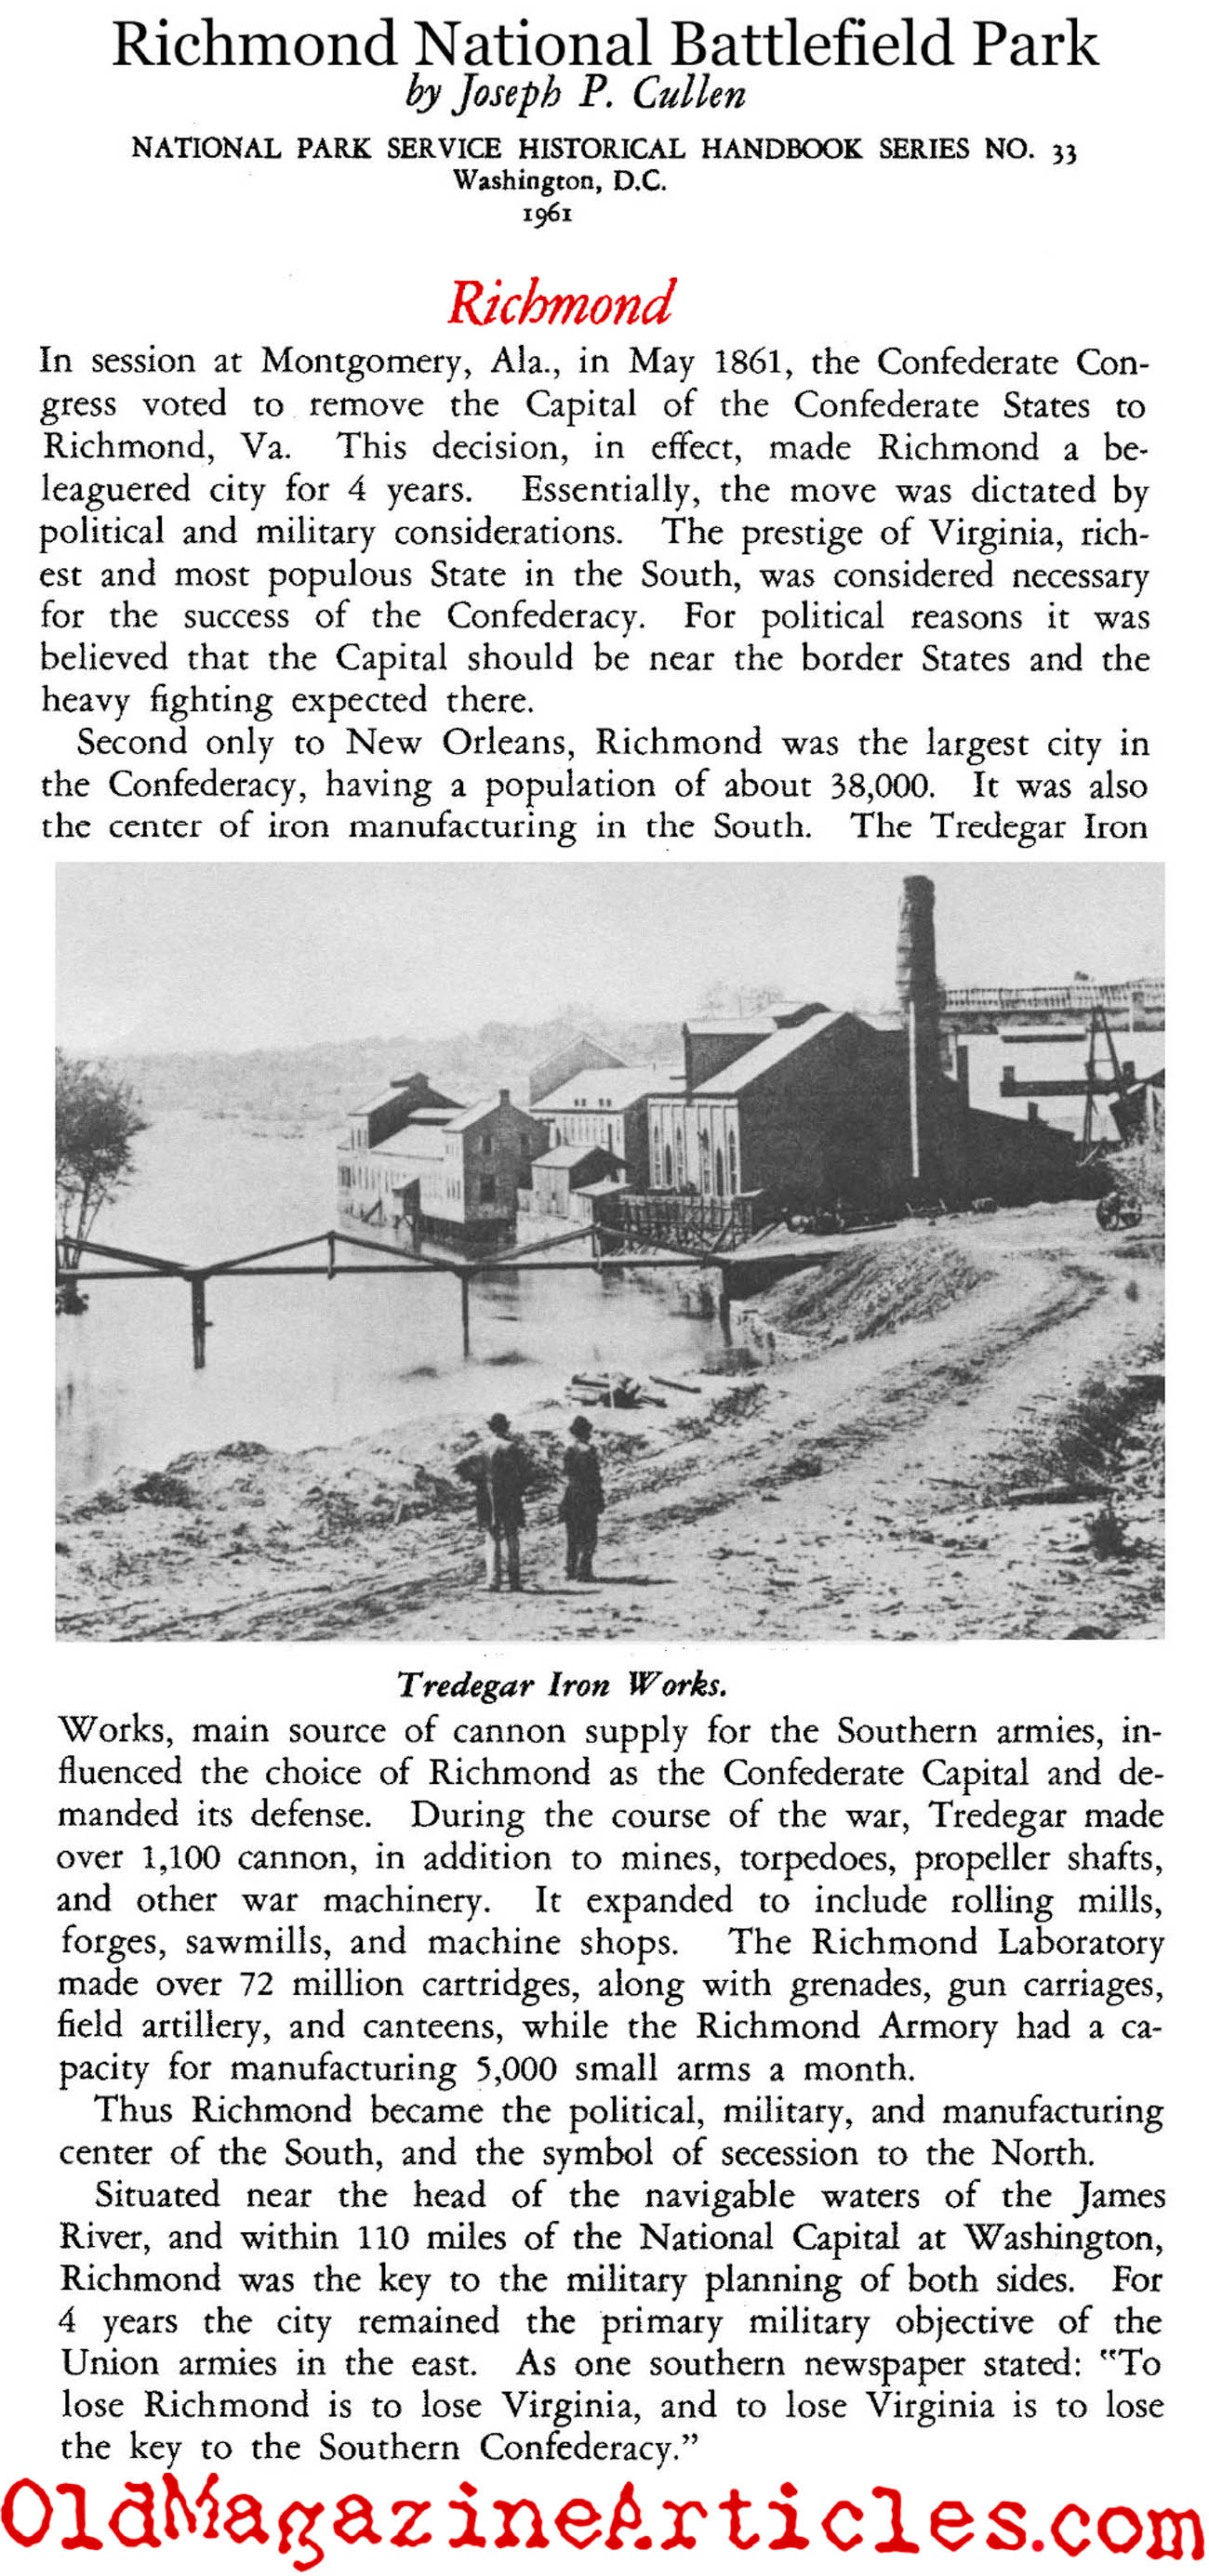 Richmond Selected as the Capital of the Confederacy (National Park Service, 1961)